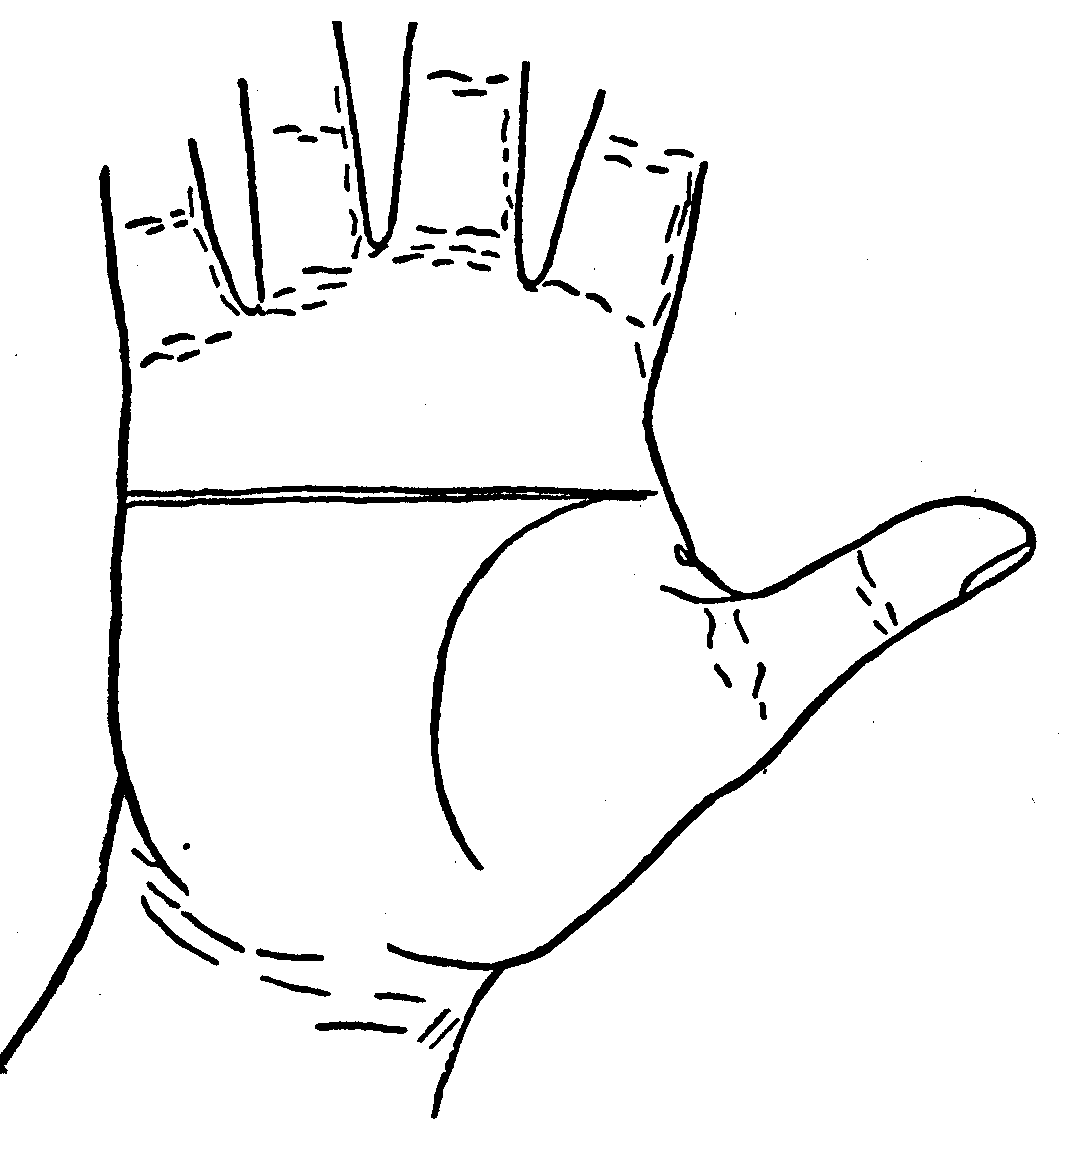 The project gutenberg ebook of palmistry for all by cheiro plate vi the line of head and the line of heart running together m4hsunfo